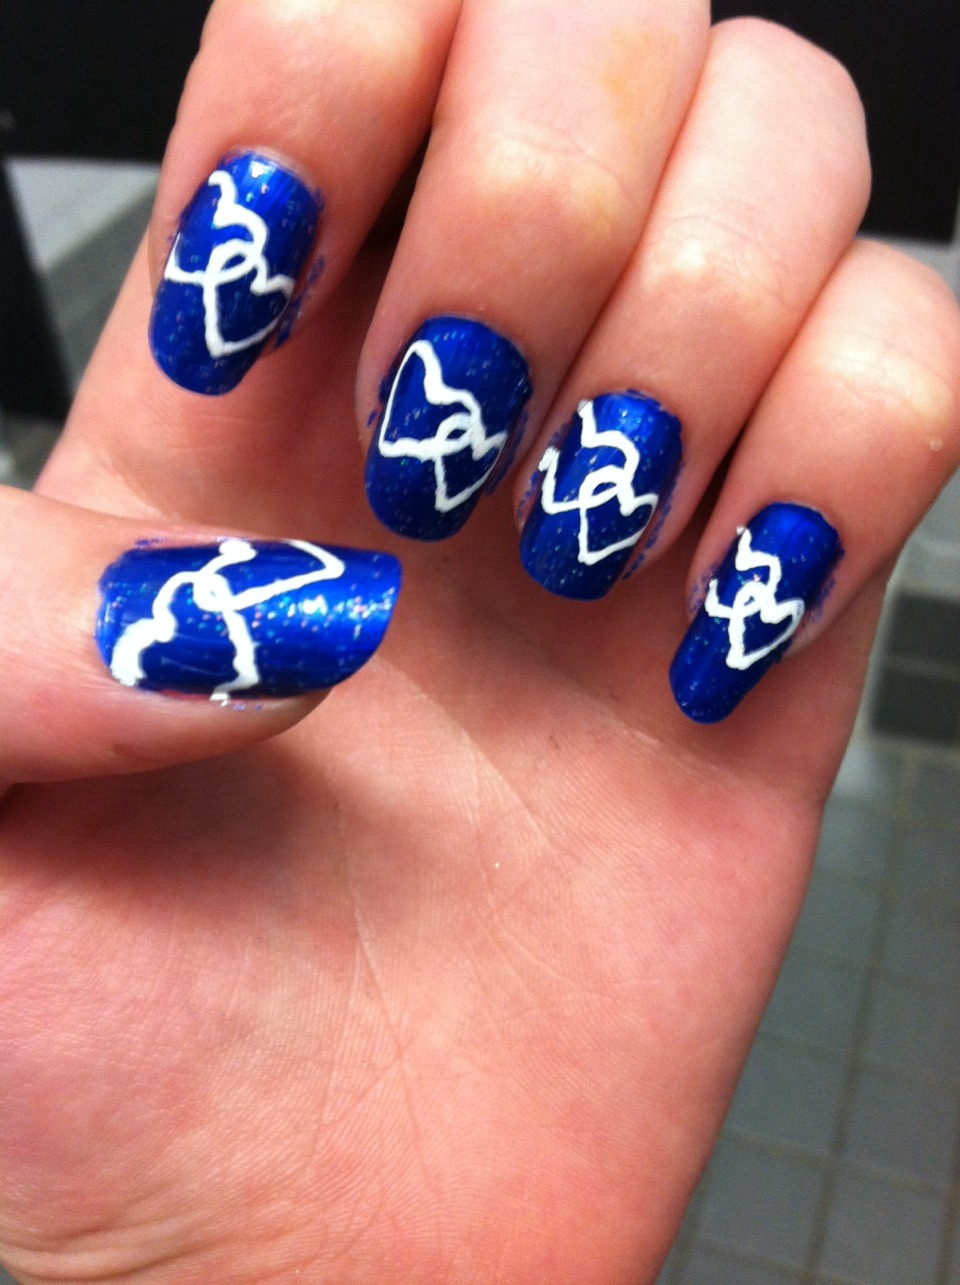 Hearts locked together use a nail pen and start your design and follow for more beauty tips